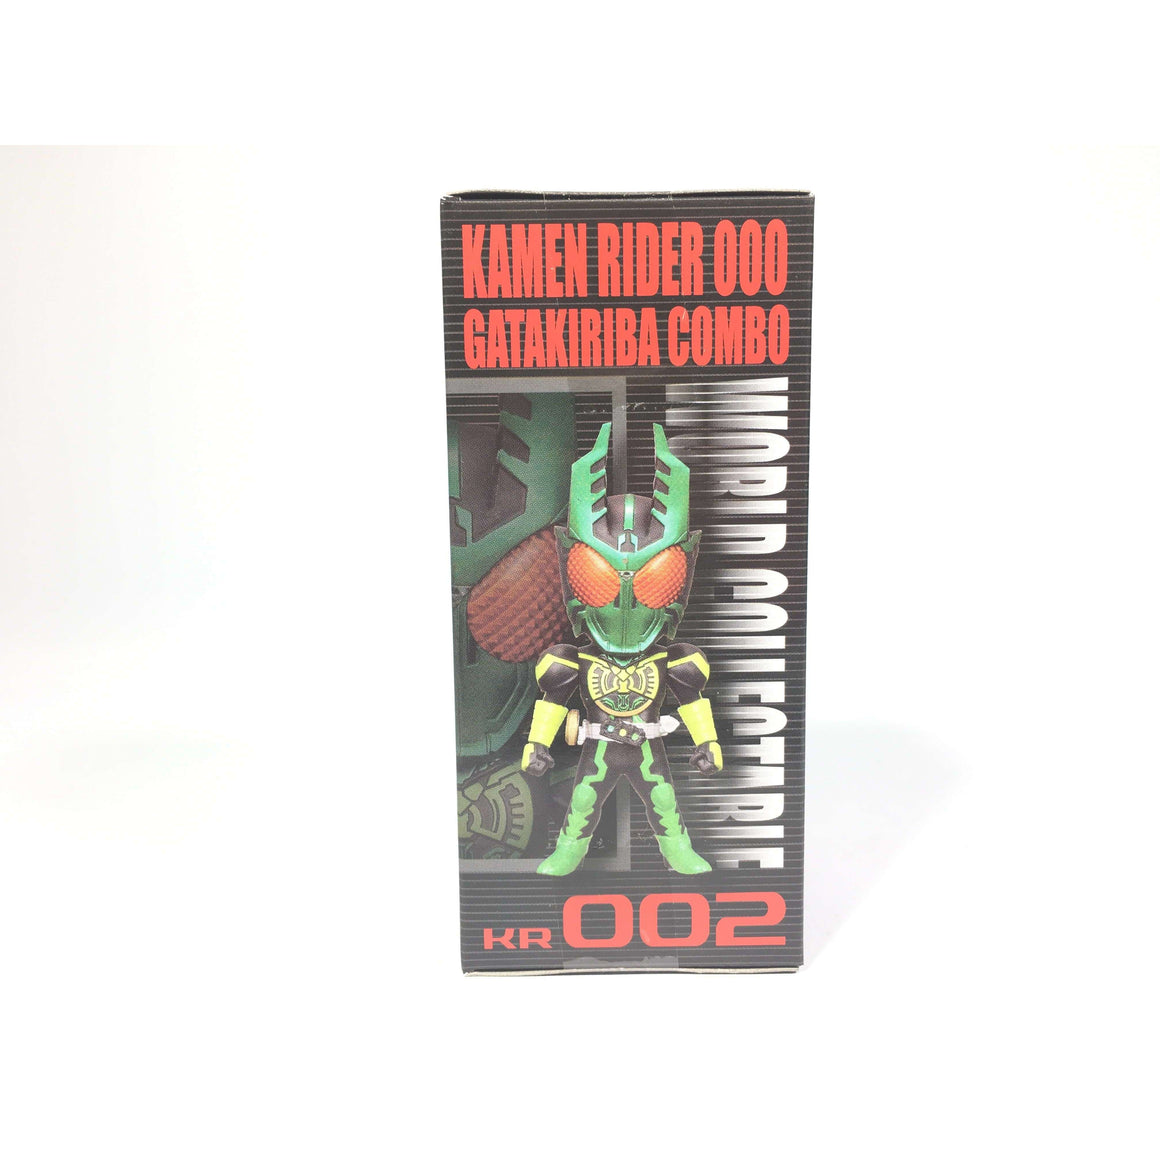 CSTOYS INTERNATIONAL:[BOXED] WCF World Collectable Figure - Kamen Rider OOO GataKiriBa Combo